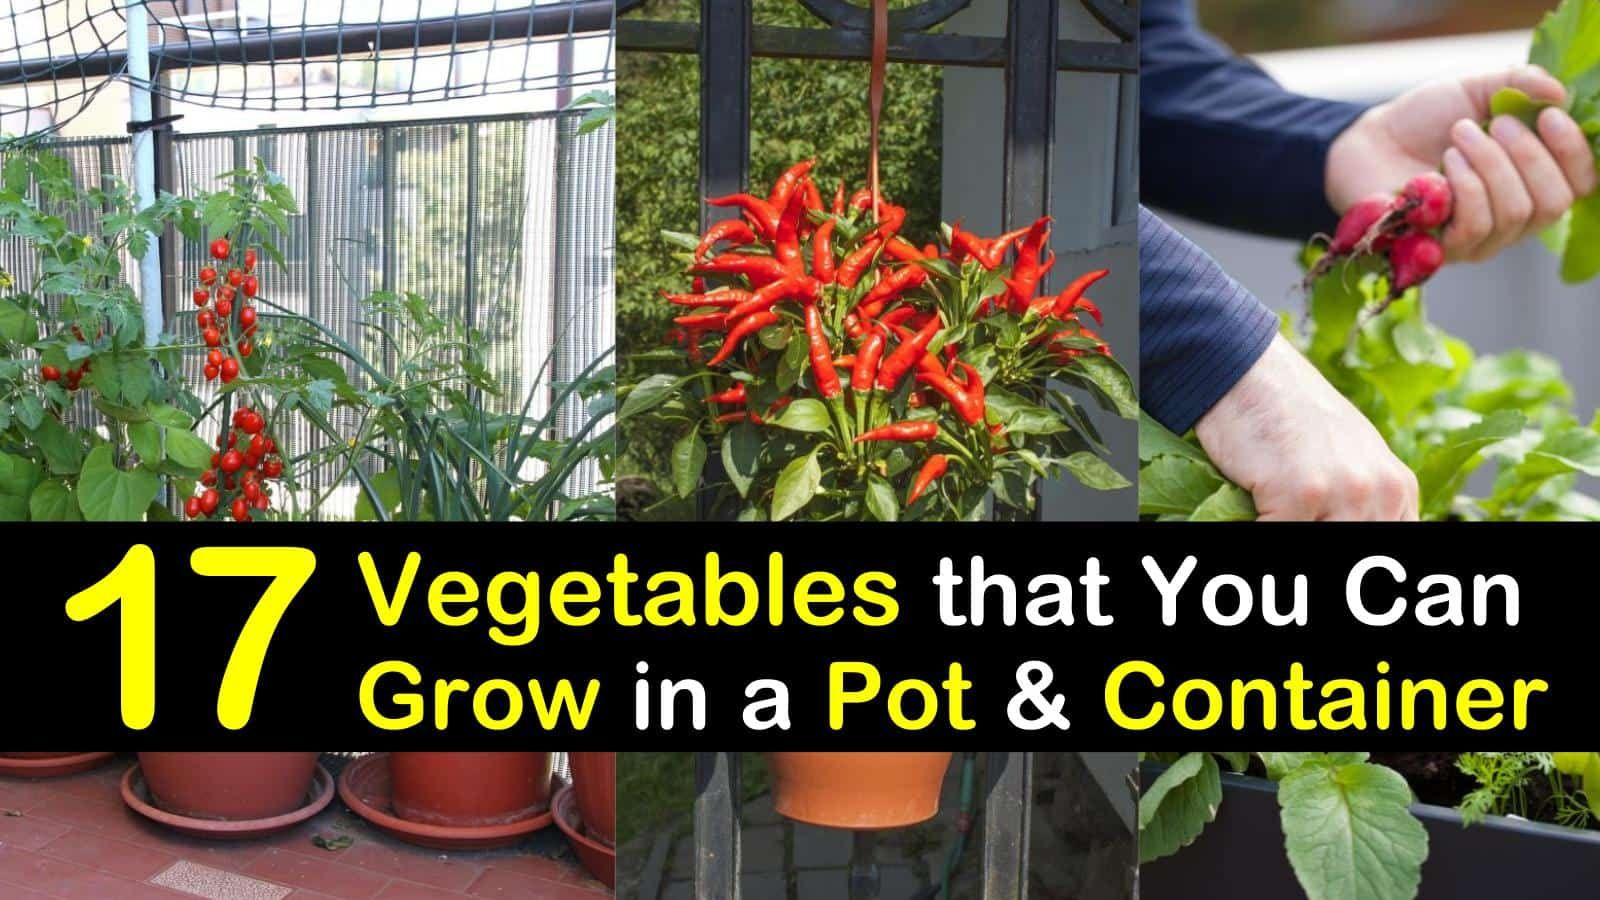 Photo of 17 Vegetables that You Can Grow in Pots and Containers